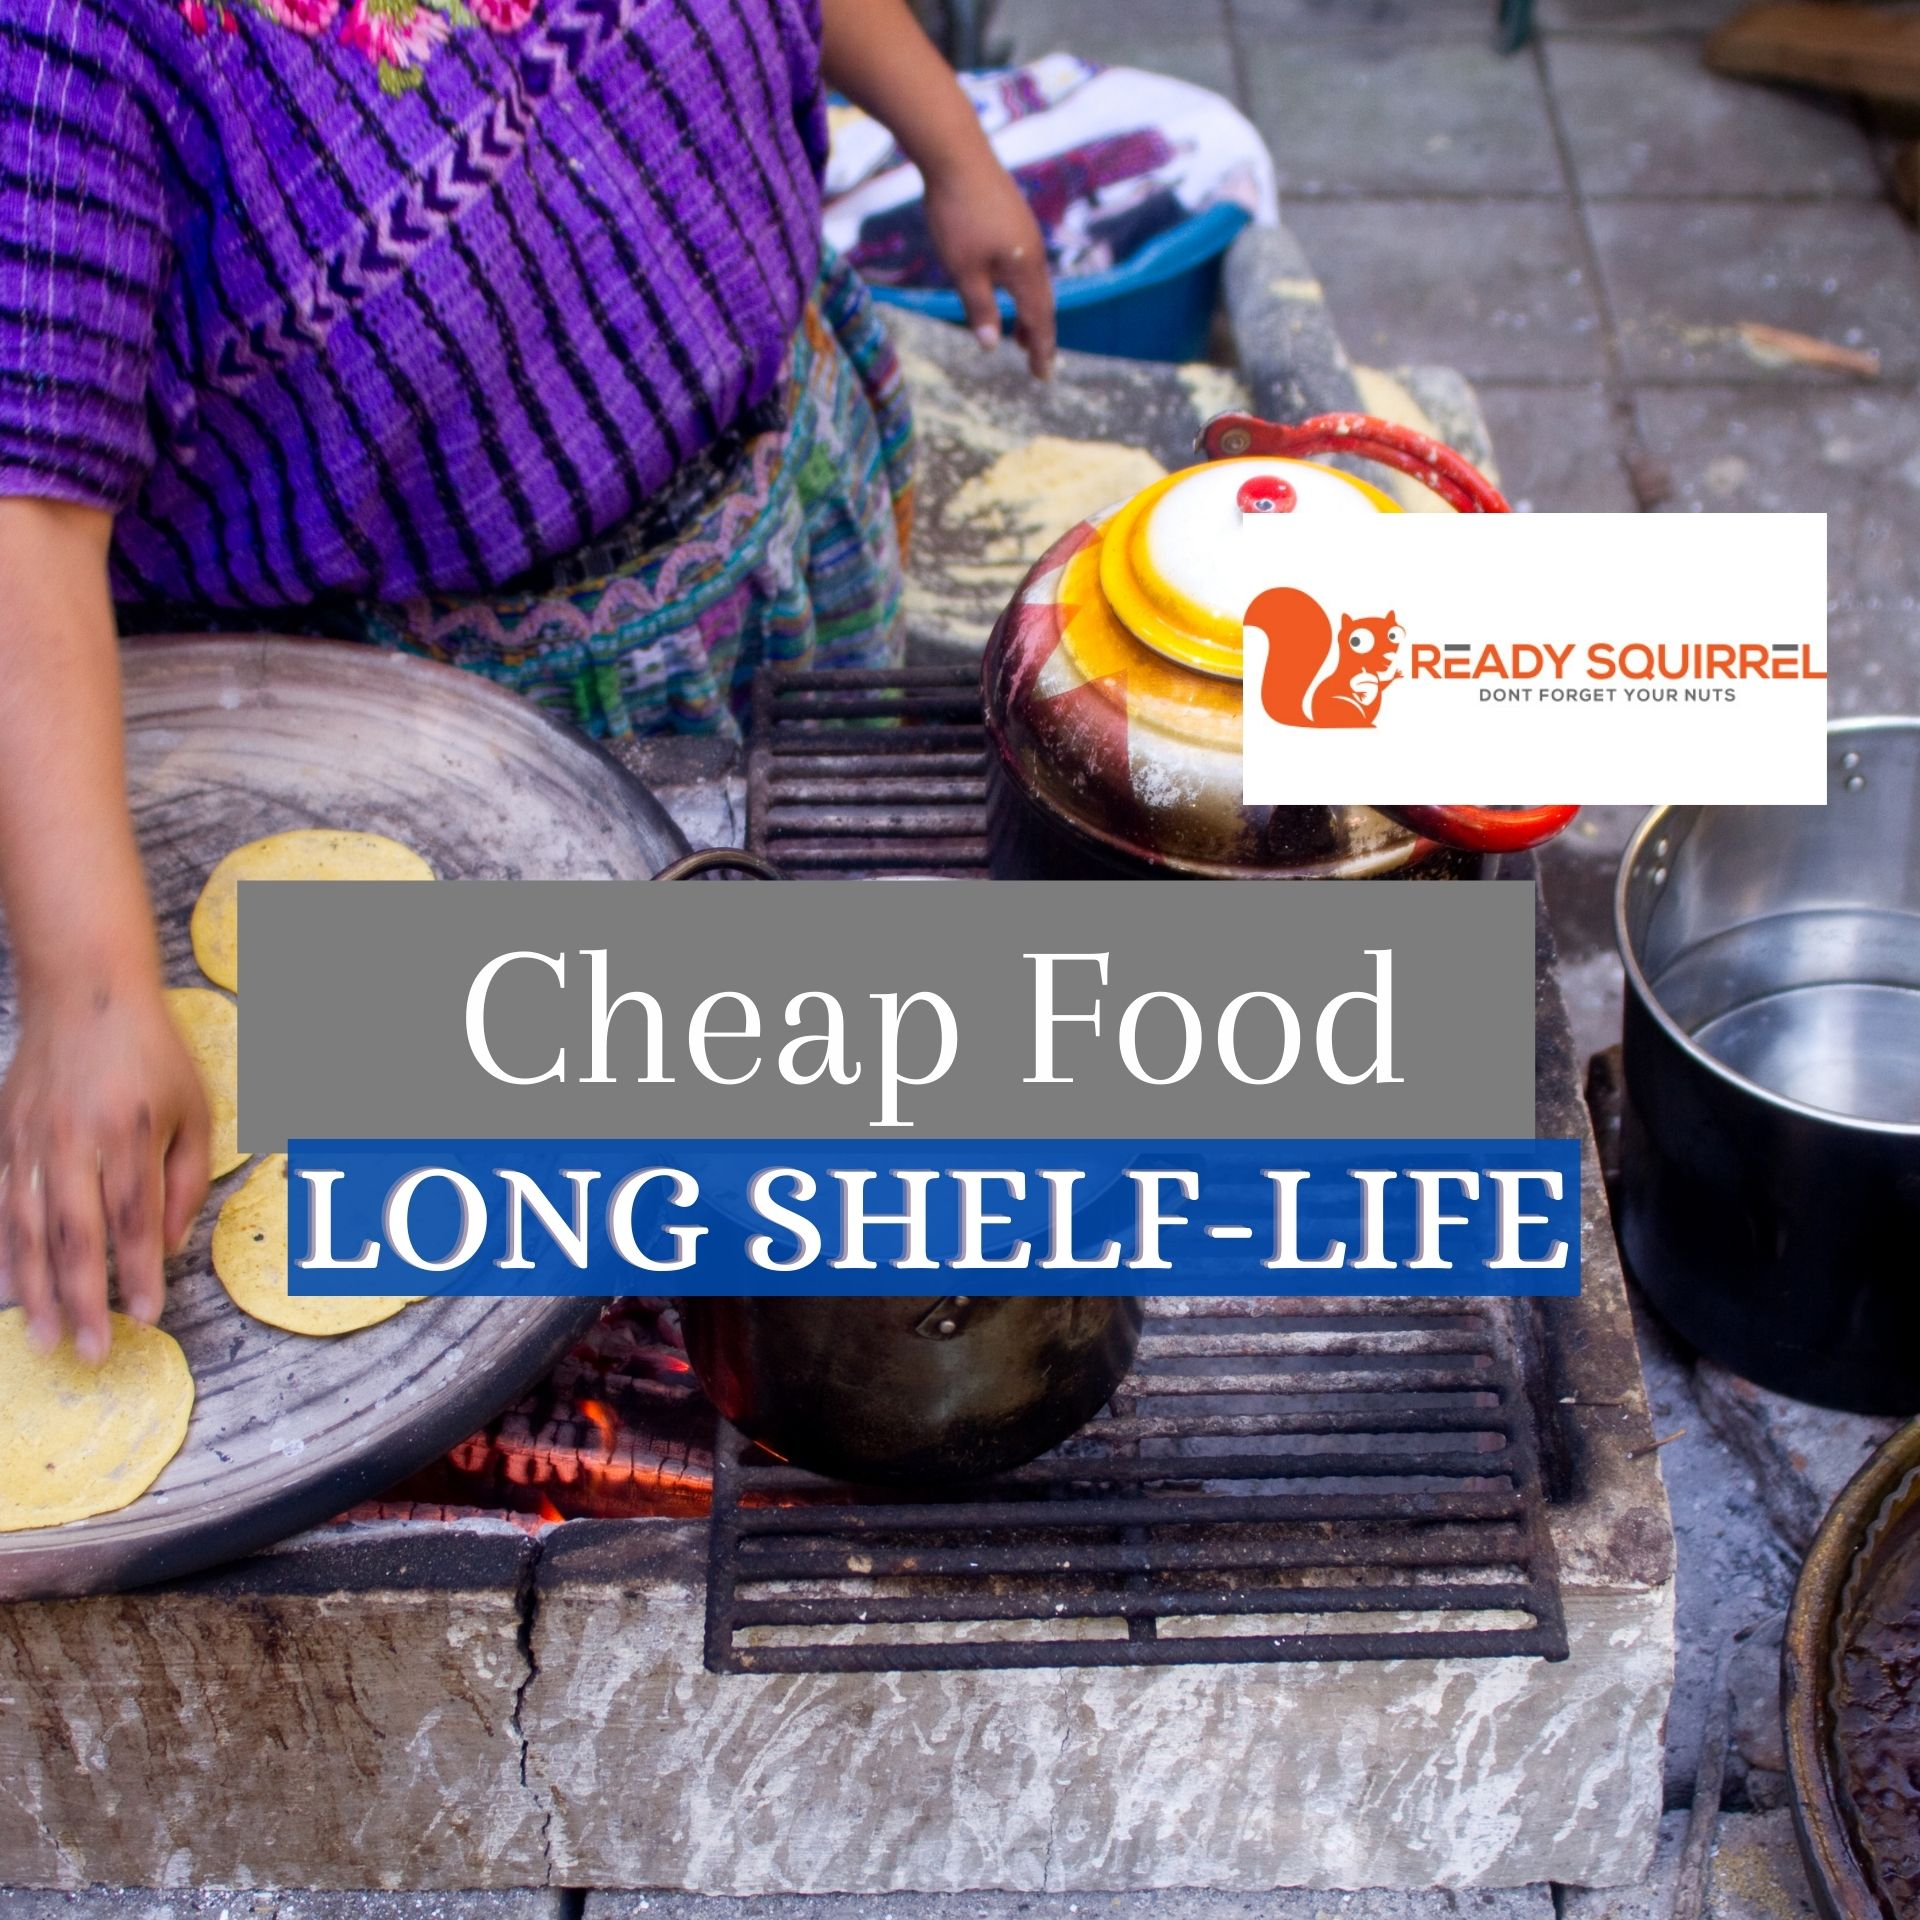 Cheap Food With a Long Shelf-life